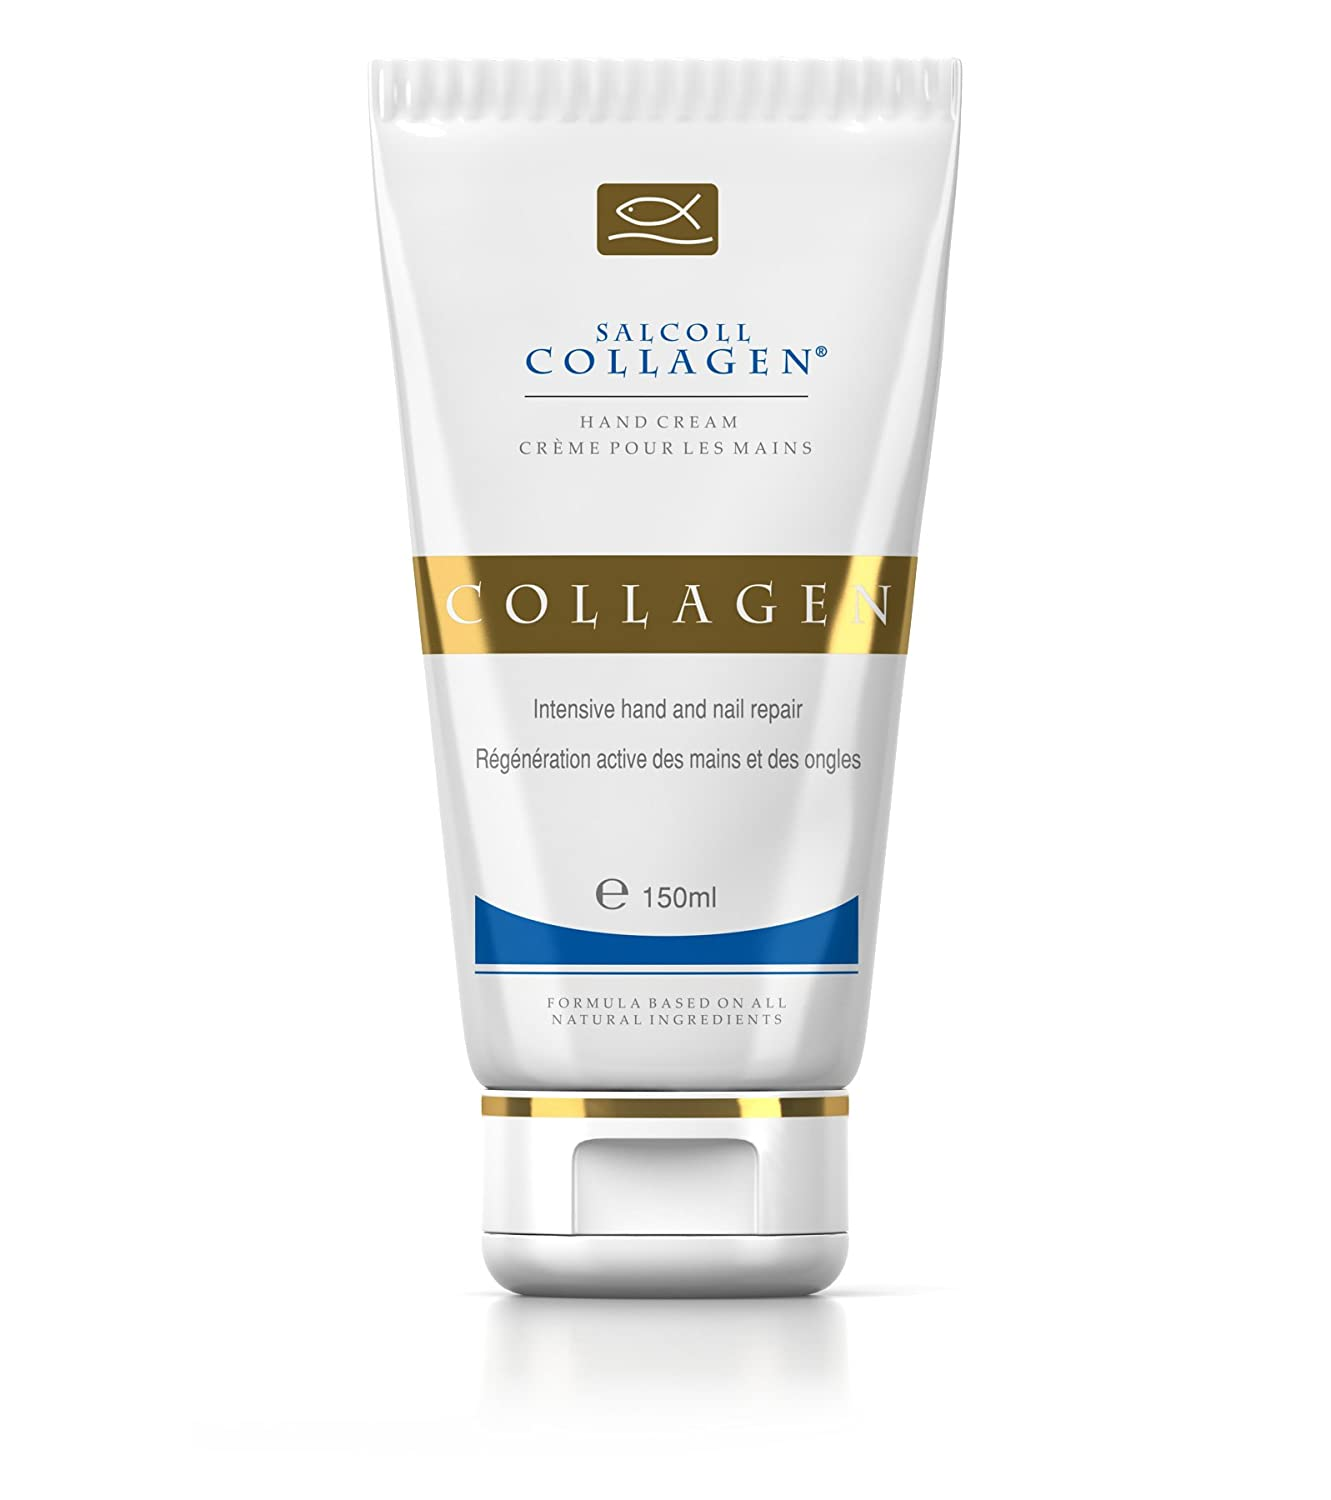 SALCOLL COLLAGEN Anti-Aging Moisturizing Hand Cream - Hypoallergenic With Potent Bioactive Collagen To Protect Heal & Assist In Skin Regeneration For Younger Looking Hands - For All Skin Types -150 ml